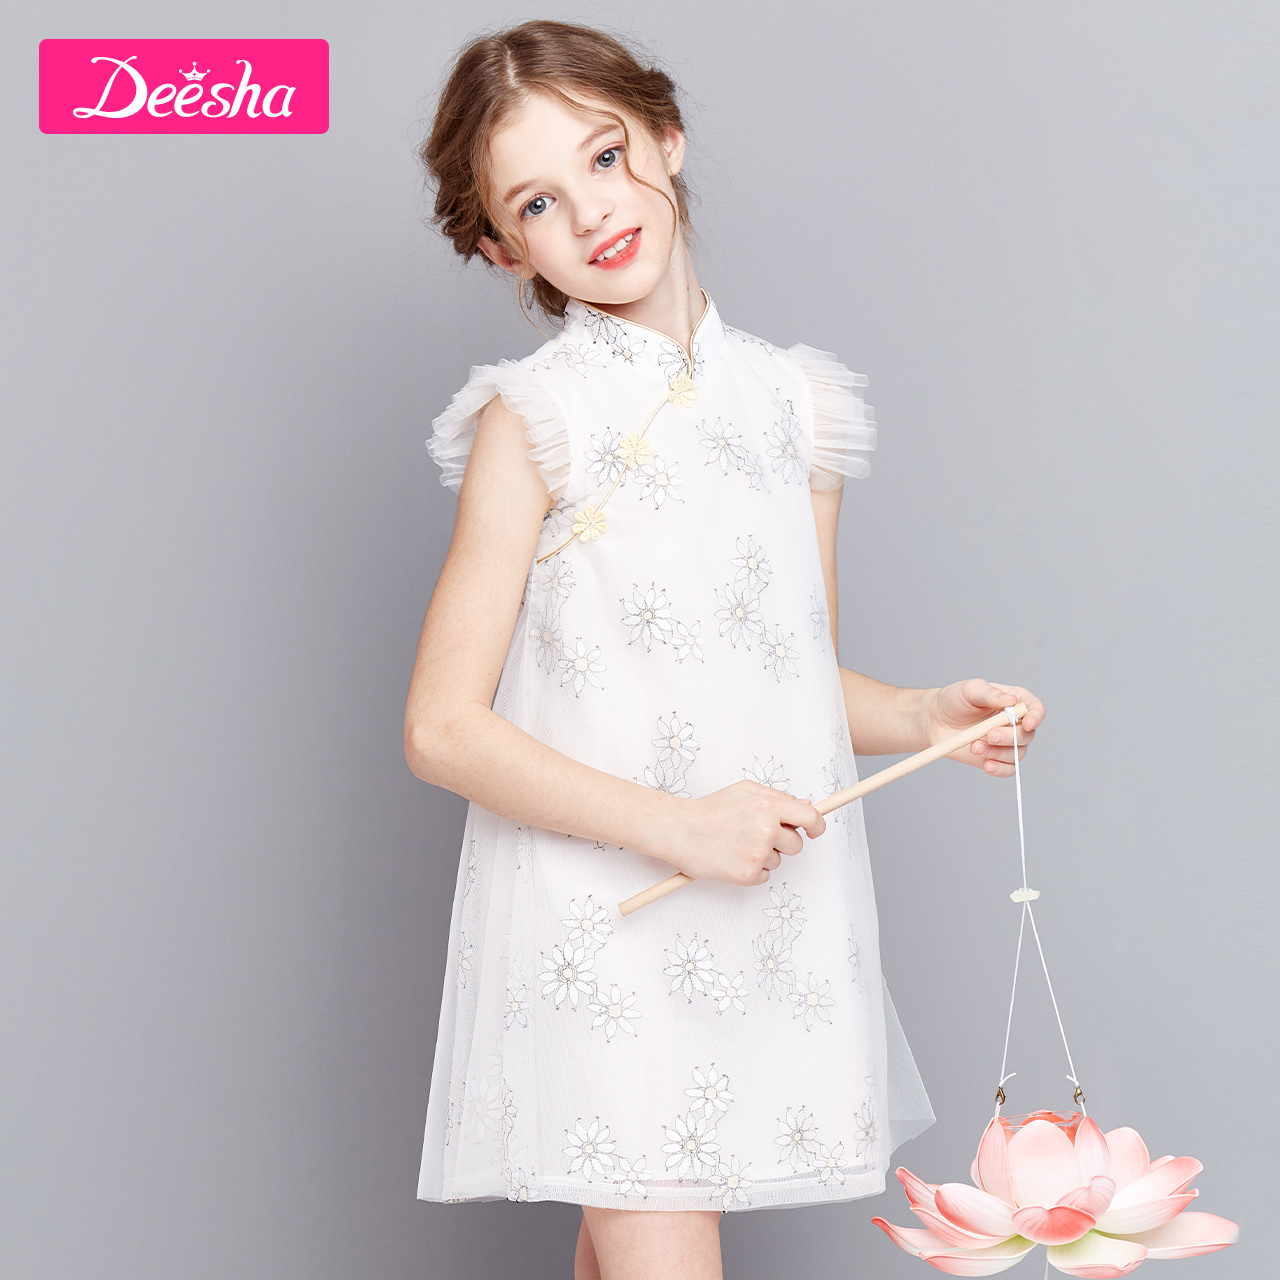 Descartes children's Dress Girls' dress 2020 summer new style elegant Hanfu cheongsam children's skirt princess skirt